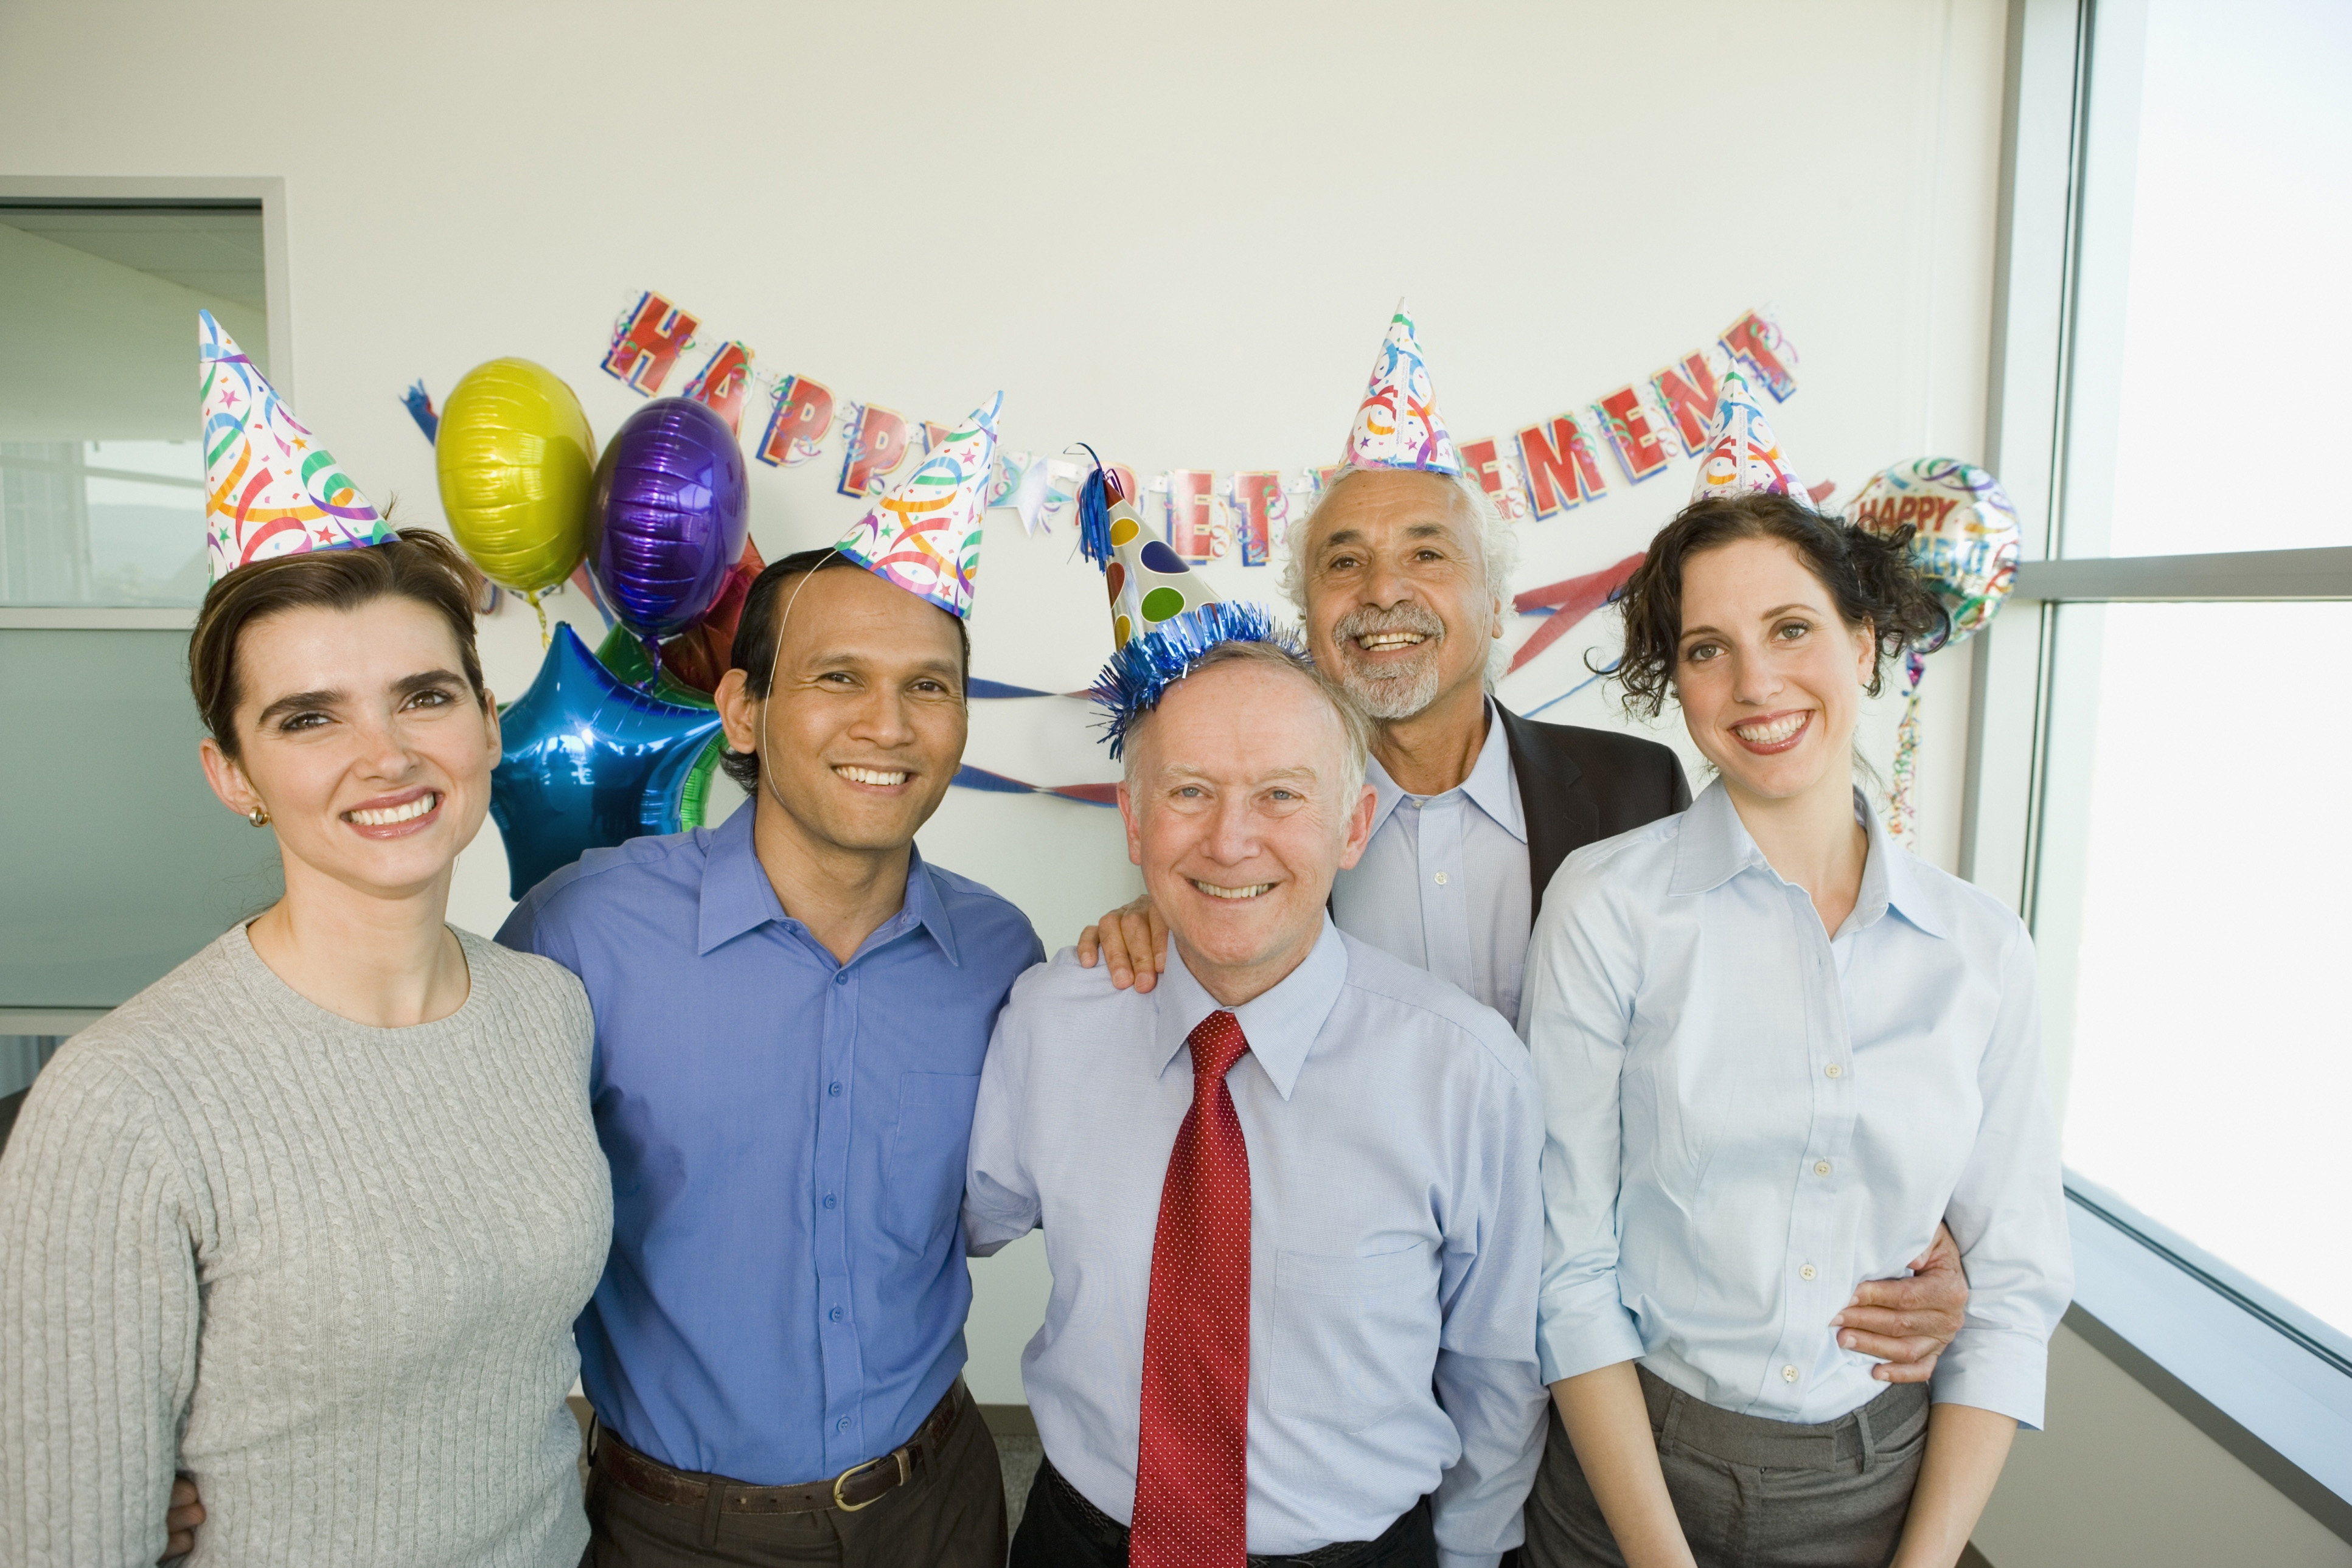 How To Plan And Execute A Memorable Retirement Party On